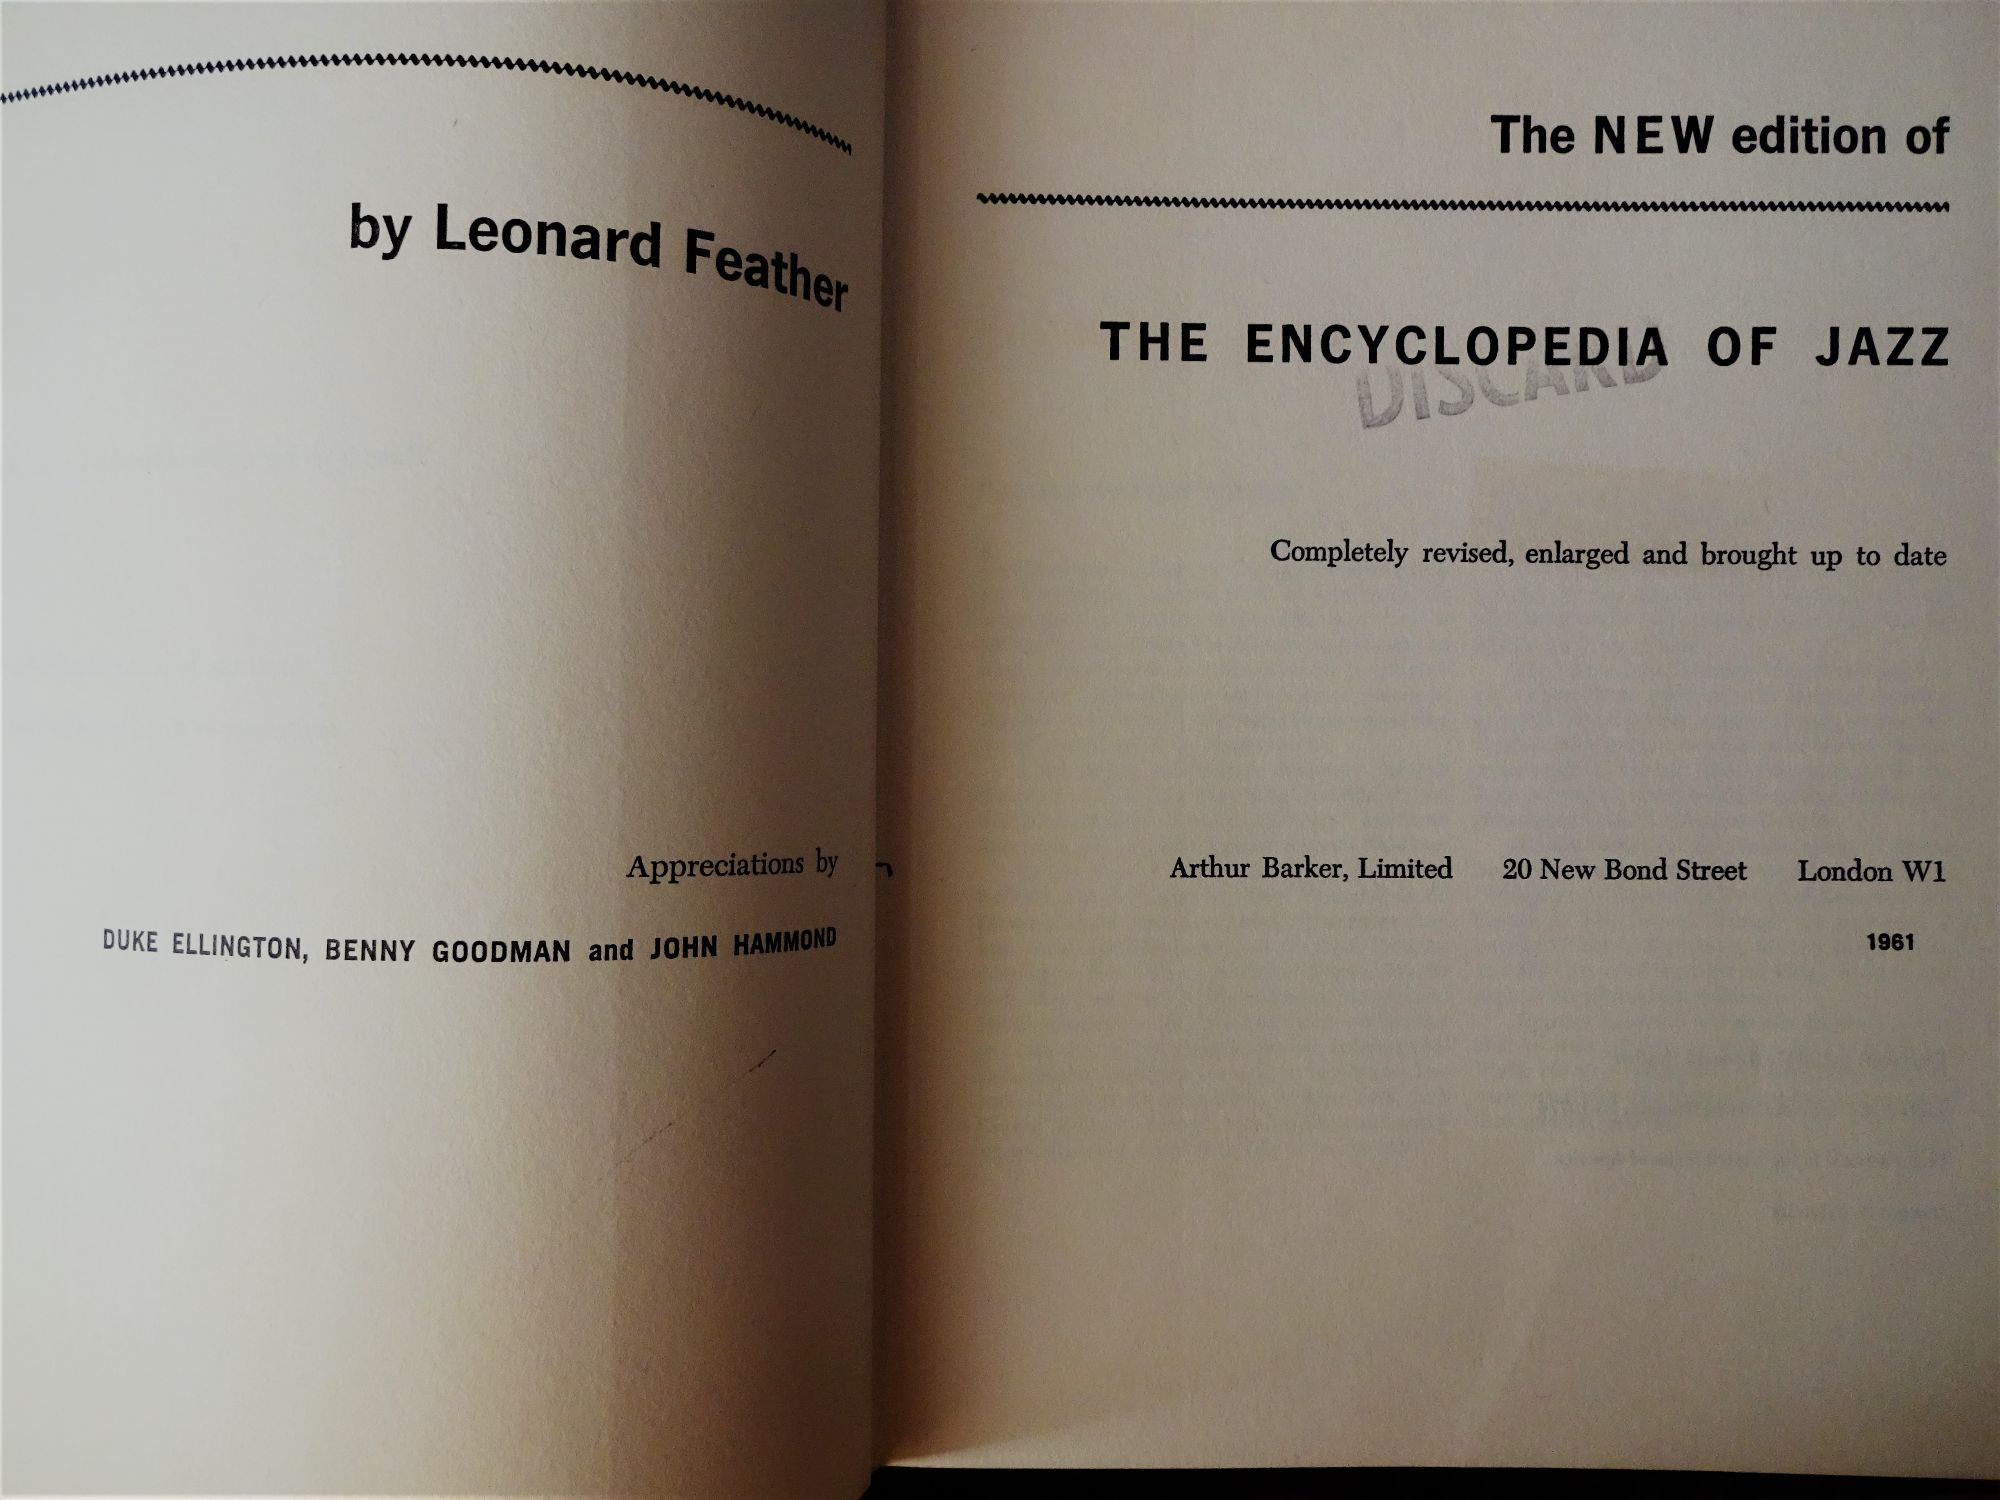 Leonard Feather, The Encyclopedia of Jazz, 1961.